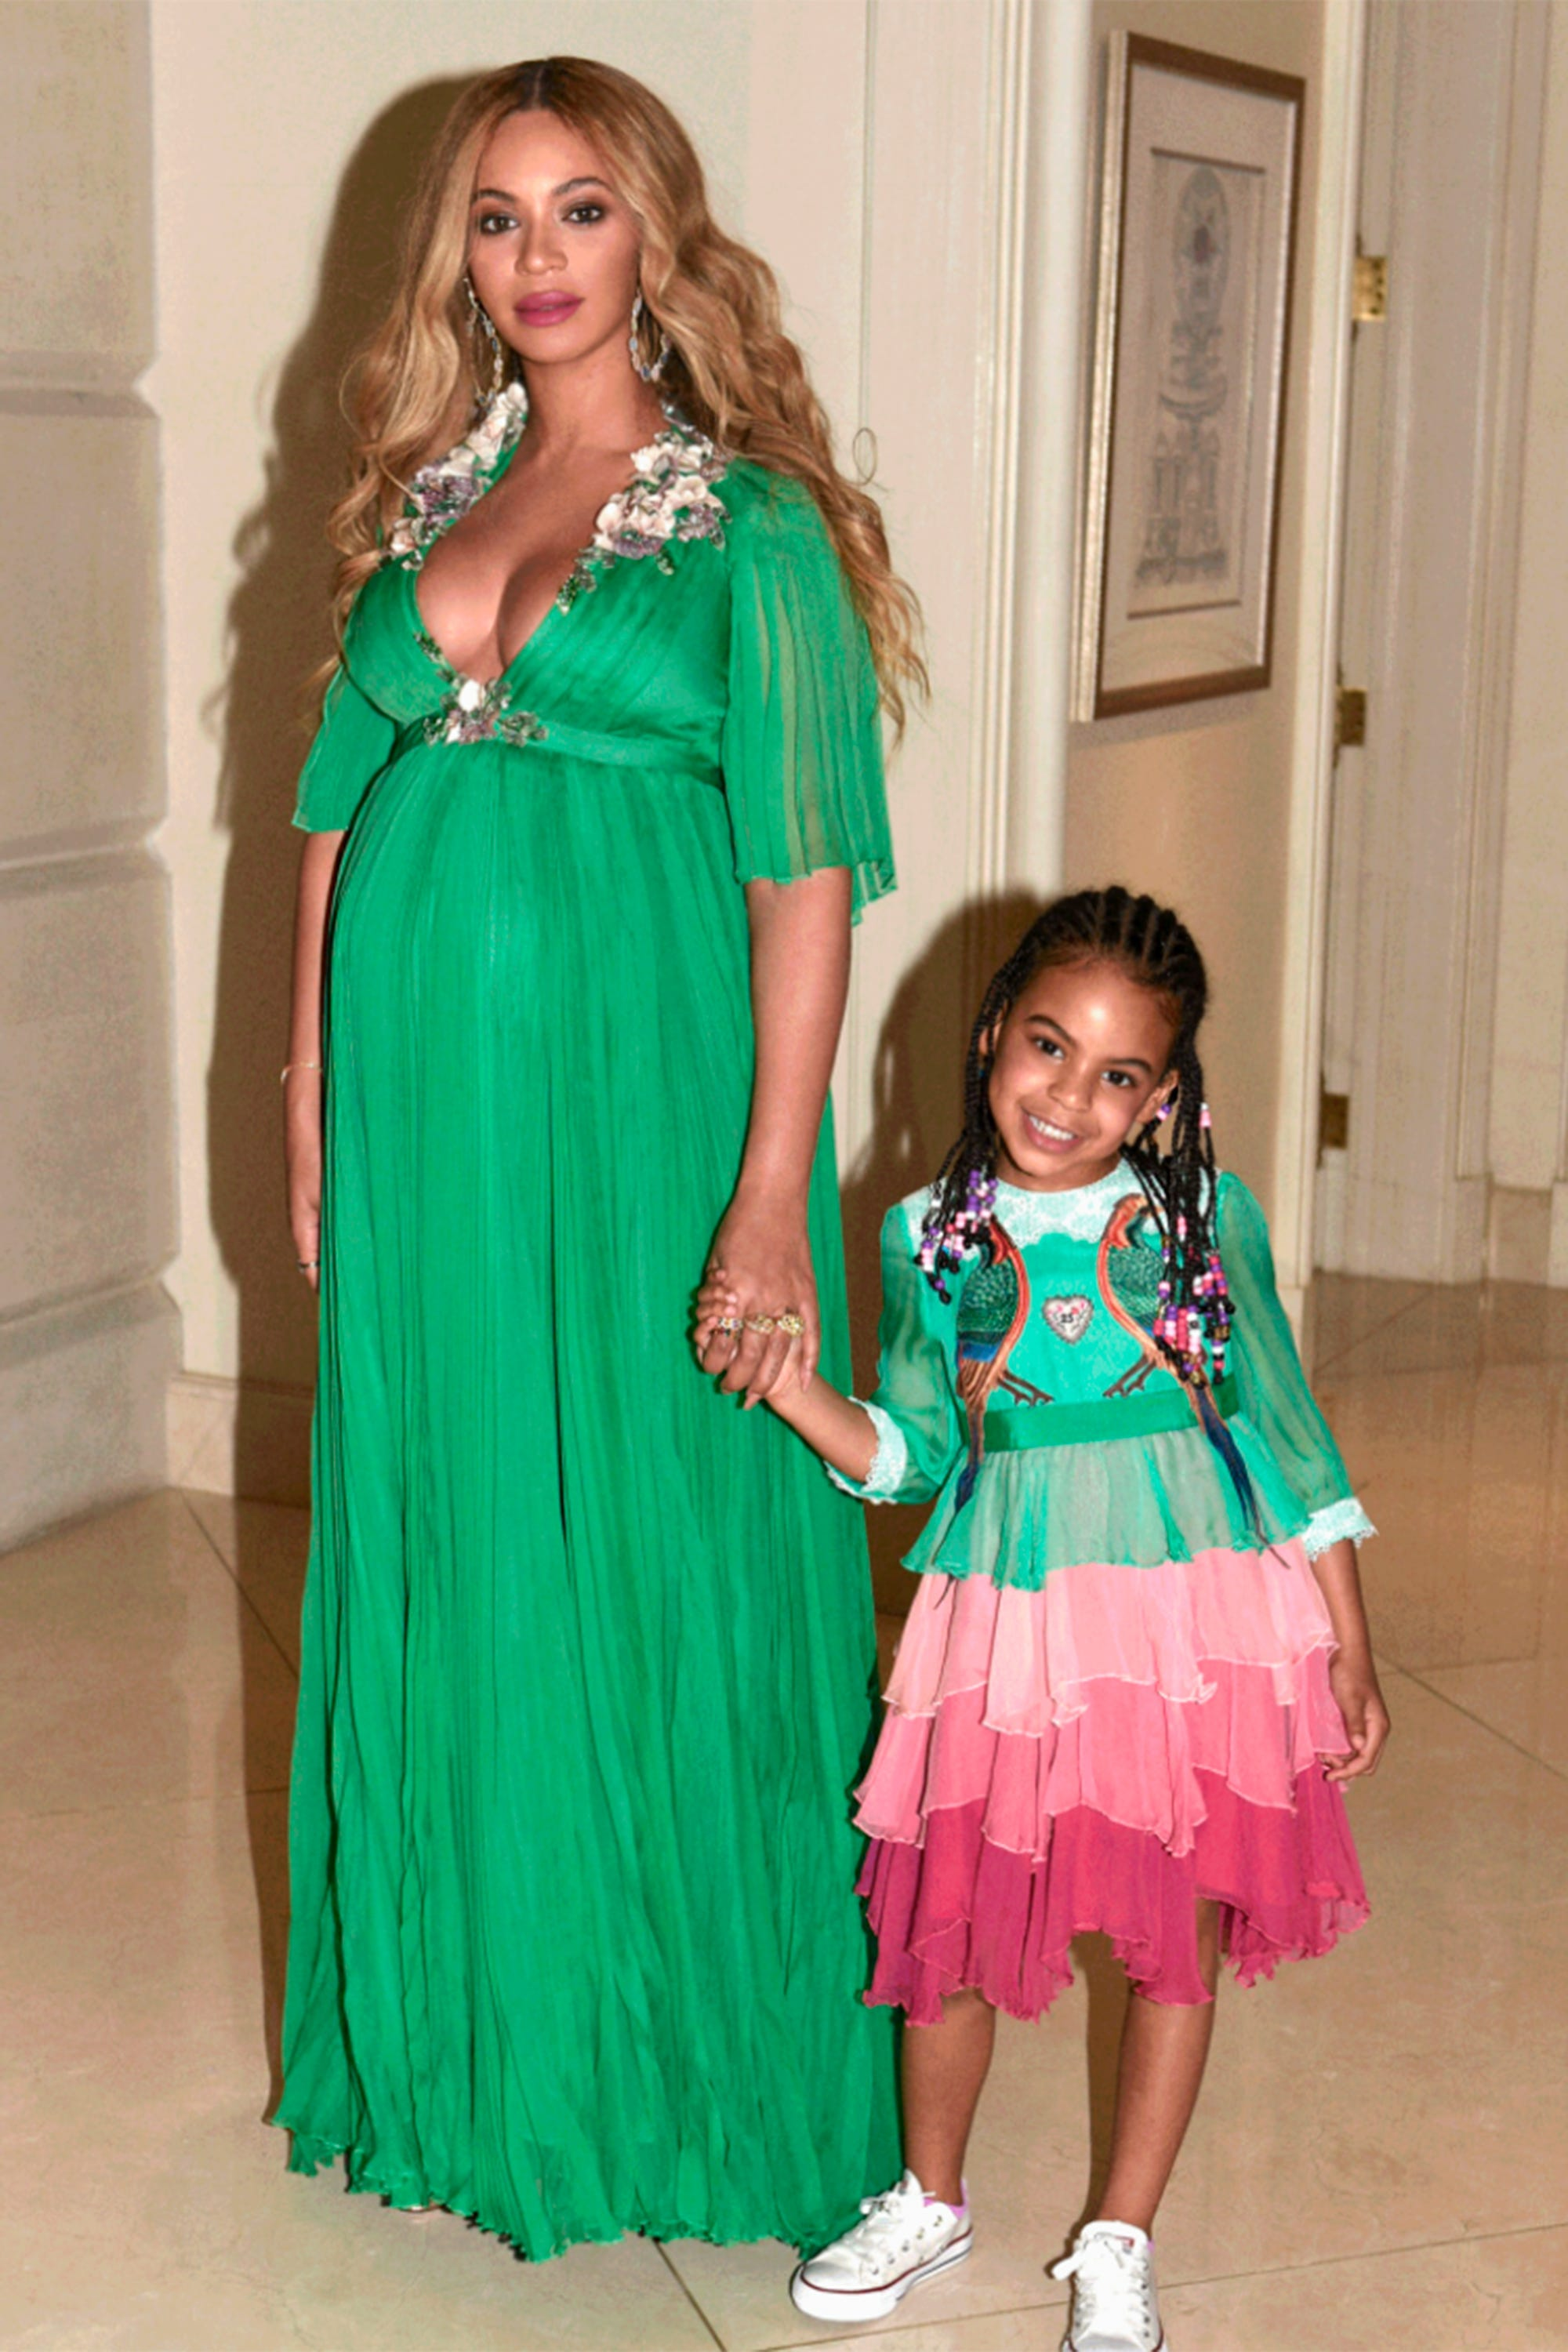 9e12774500d Did Blue Ivy's Dress Officially Crown Her As A Fashion Girl?